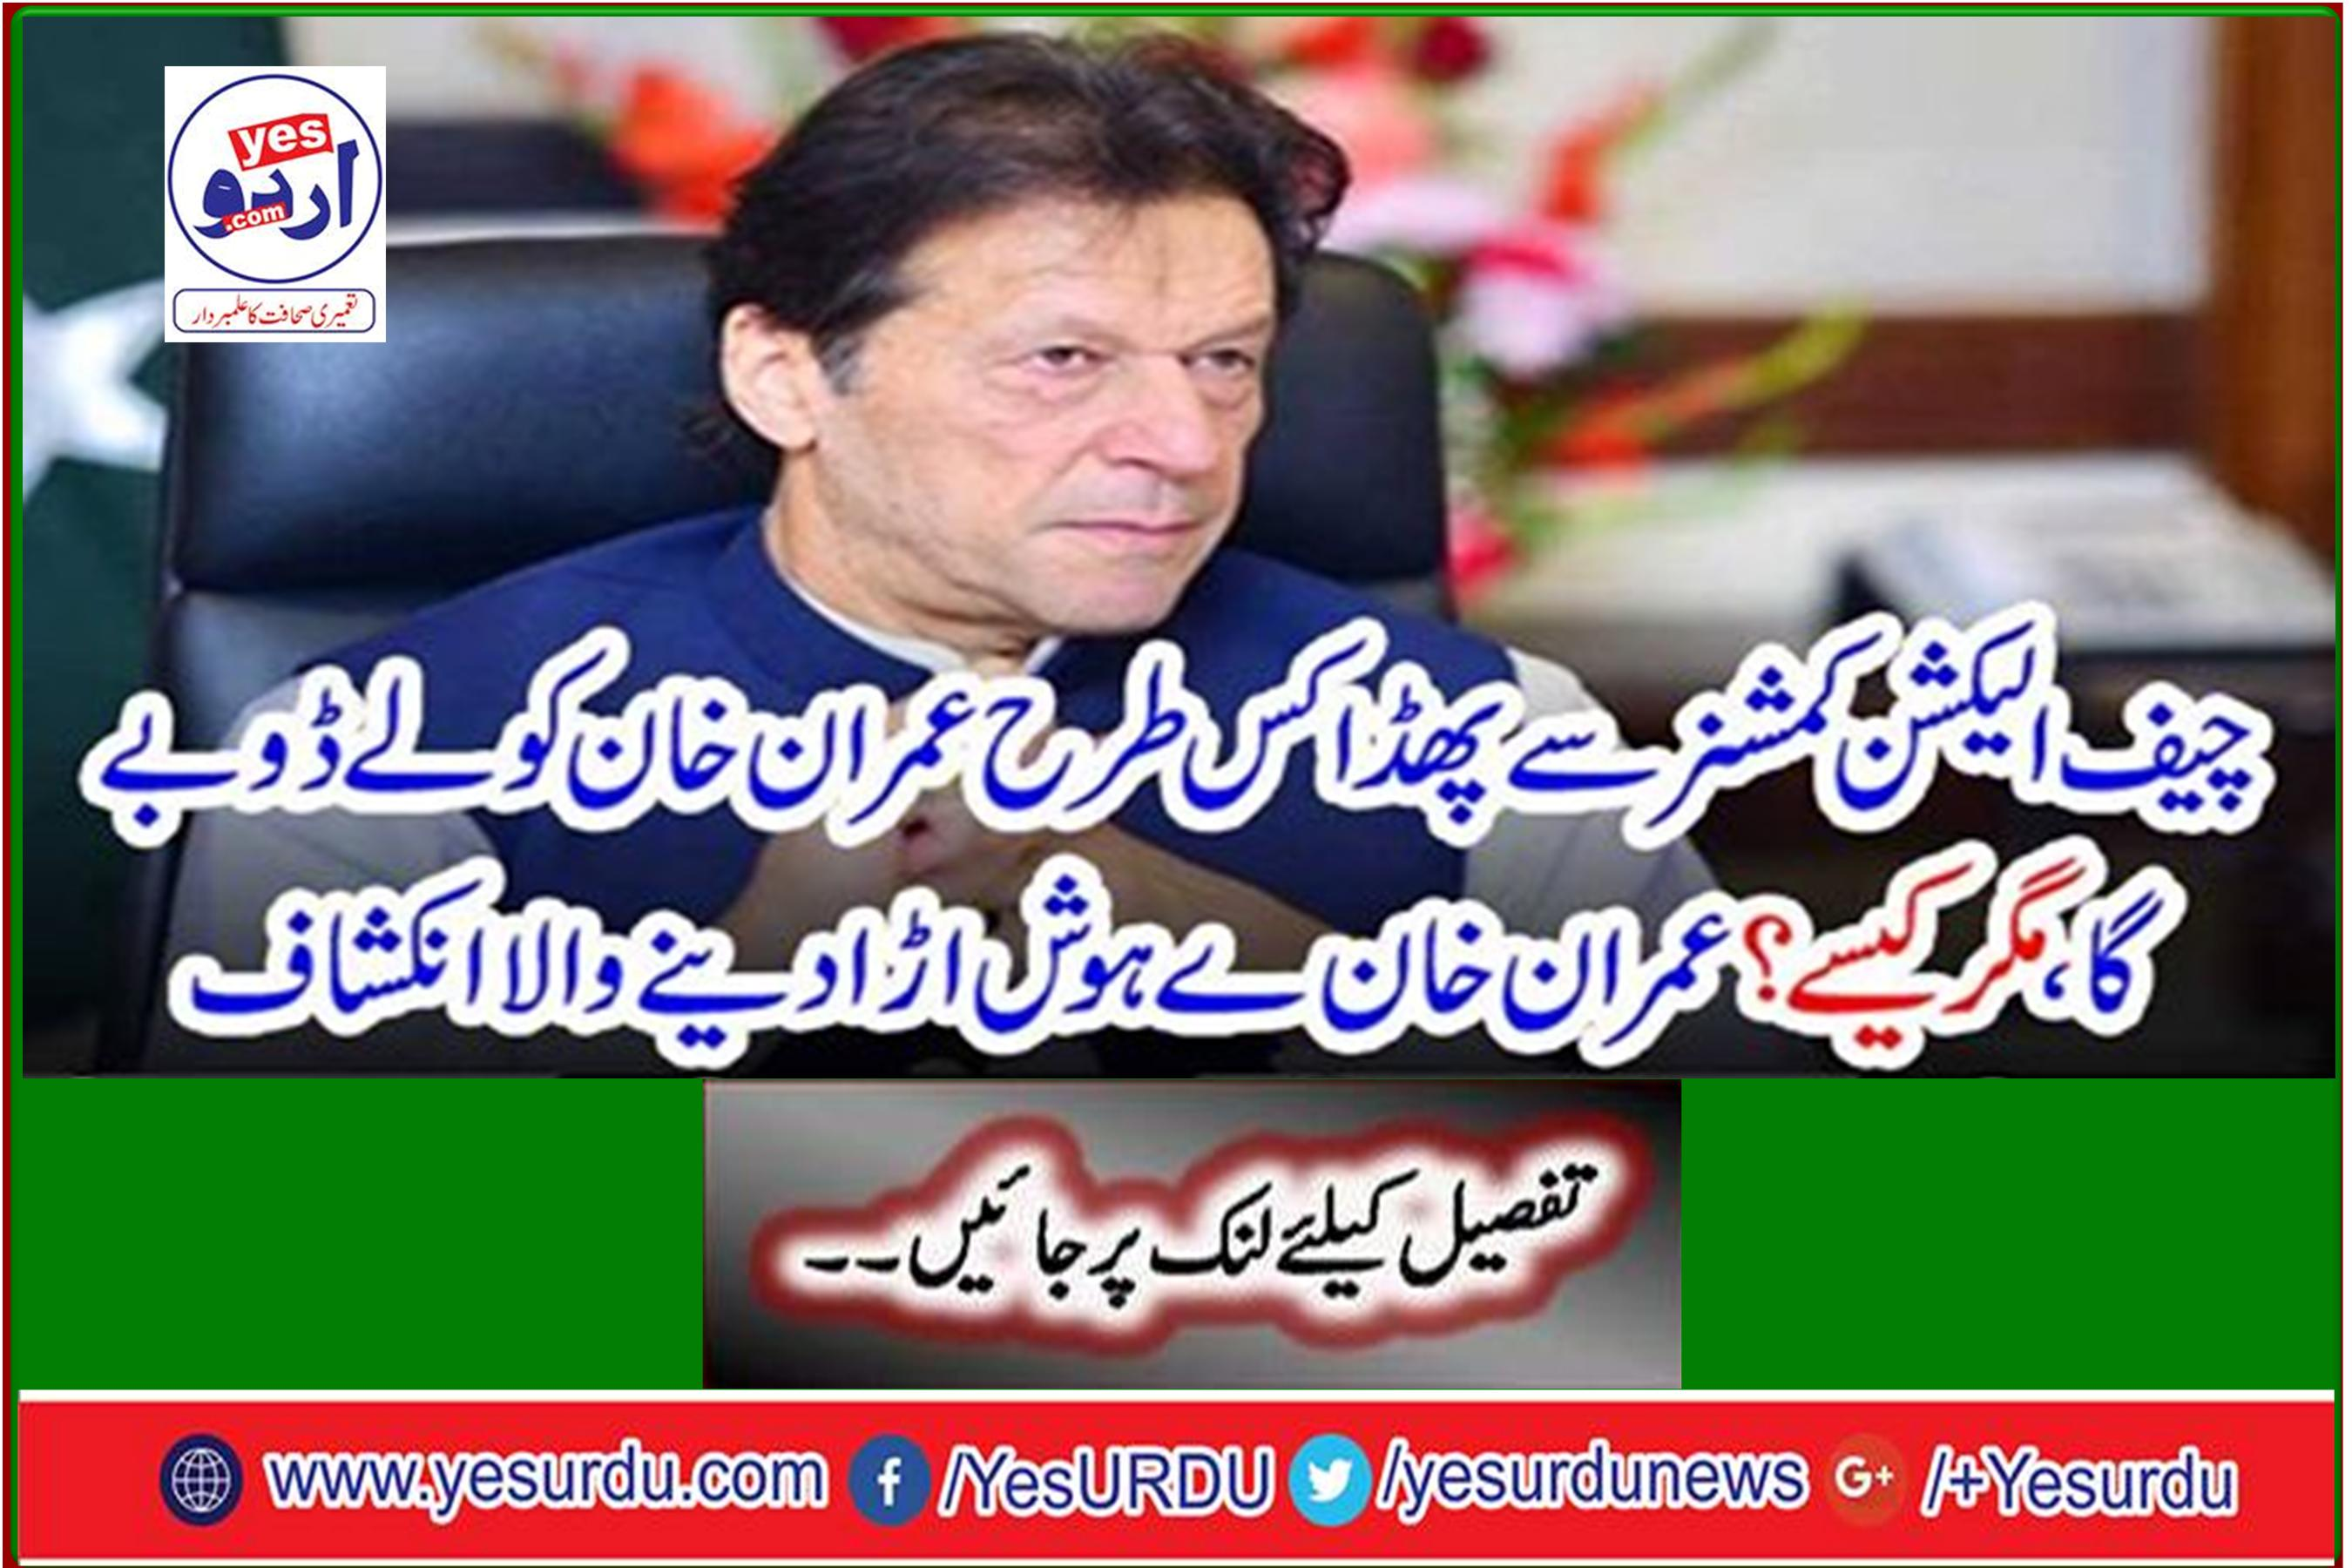 How will Imran Khan get drowned by the Chief Election Commissioner, but how? Imran Khan's astonishing anecdote